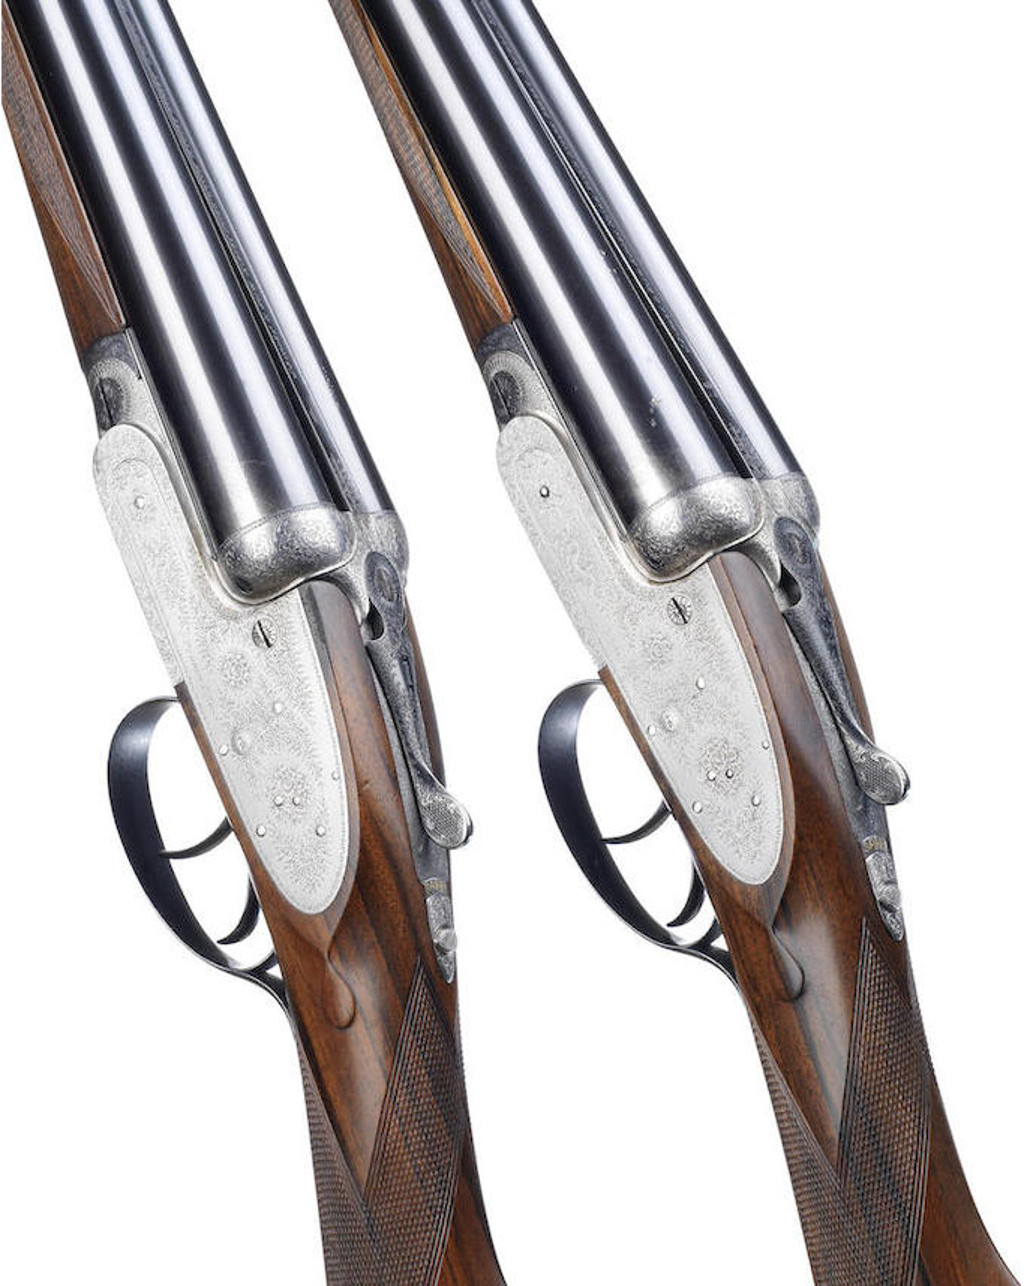 A pair of 12-bore self-opening sidelock ejector guns by J. Purdey & Sons, no. 15773-4